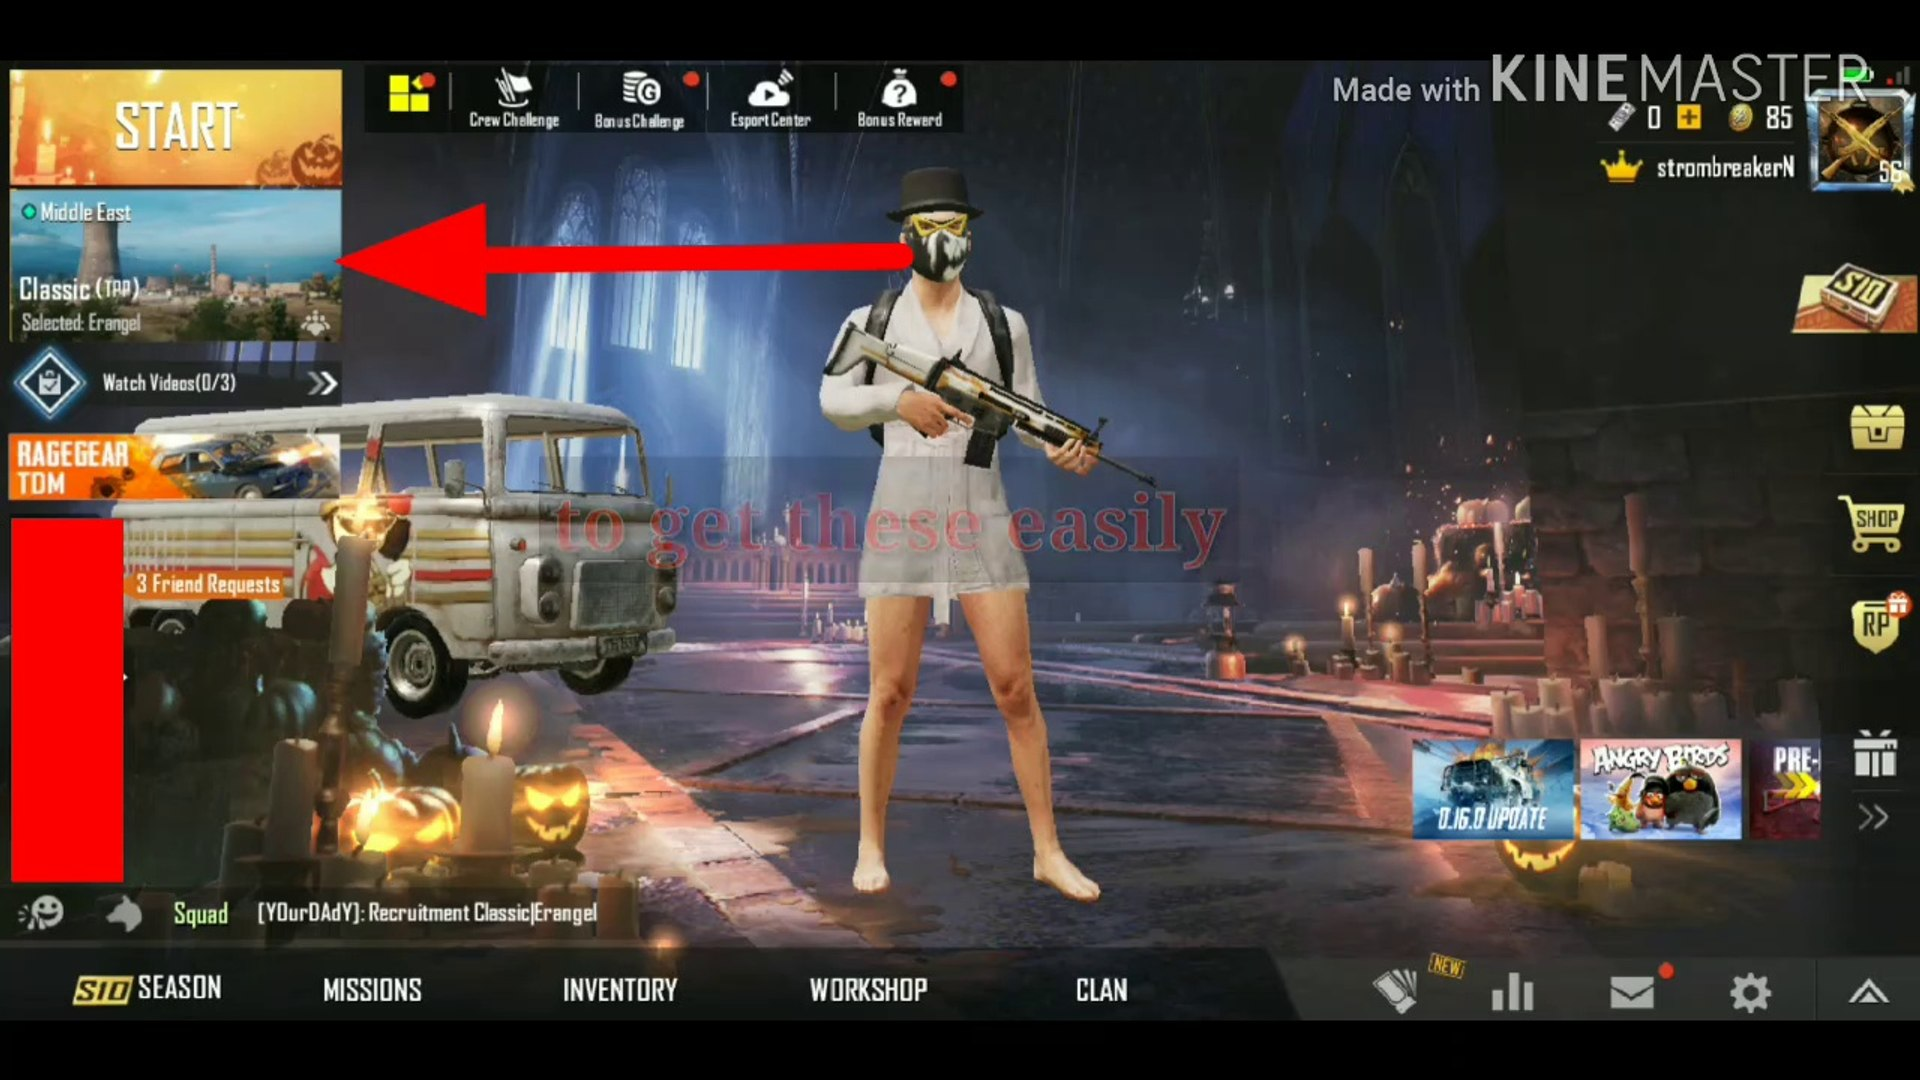 New trike to get free premium create cooupon in pubg mobile||and also BAN pan legendary color||